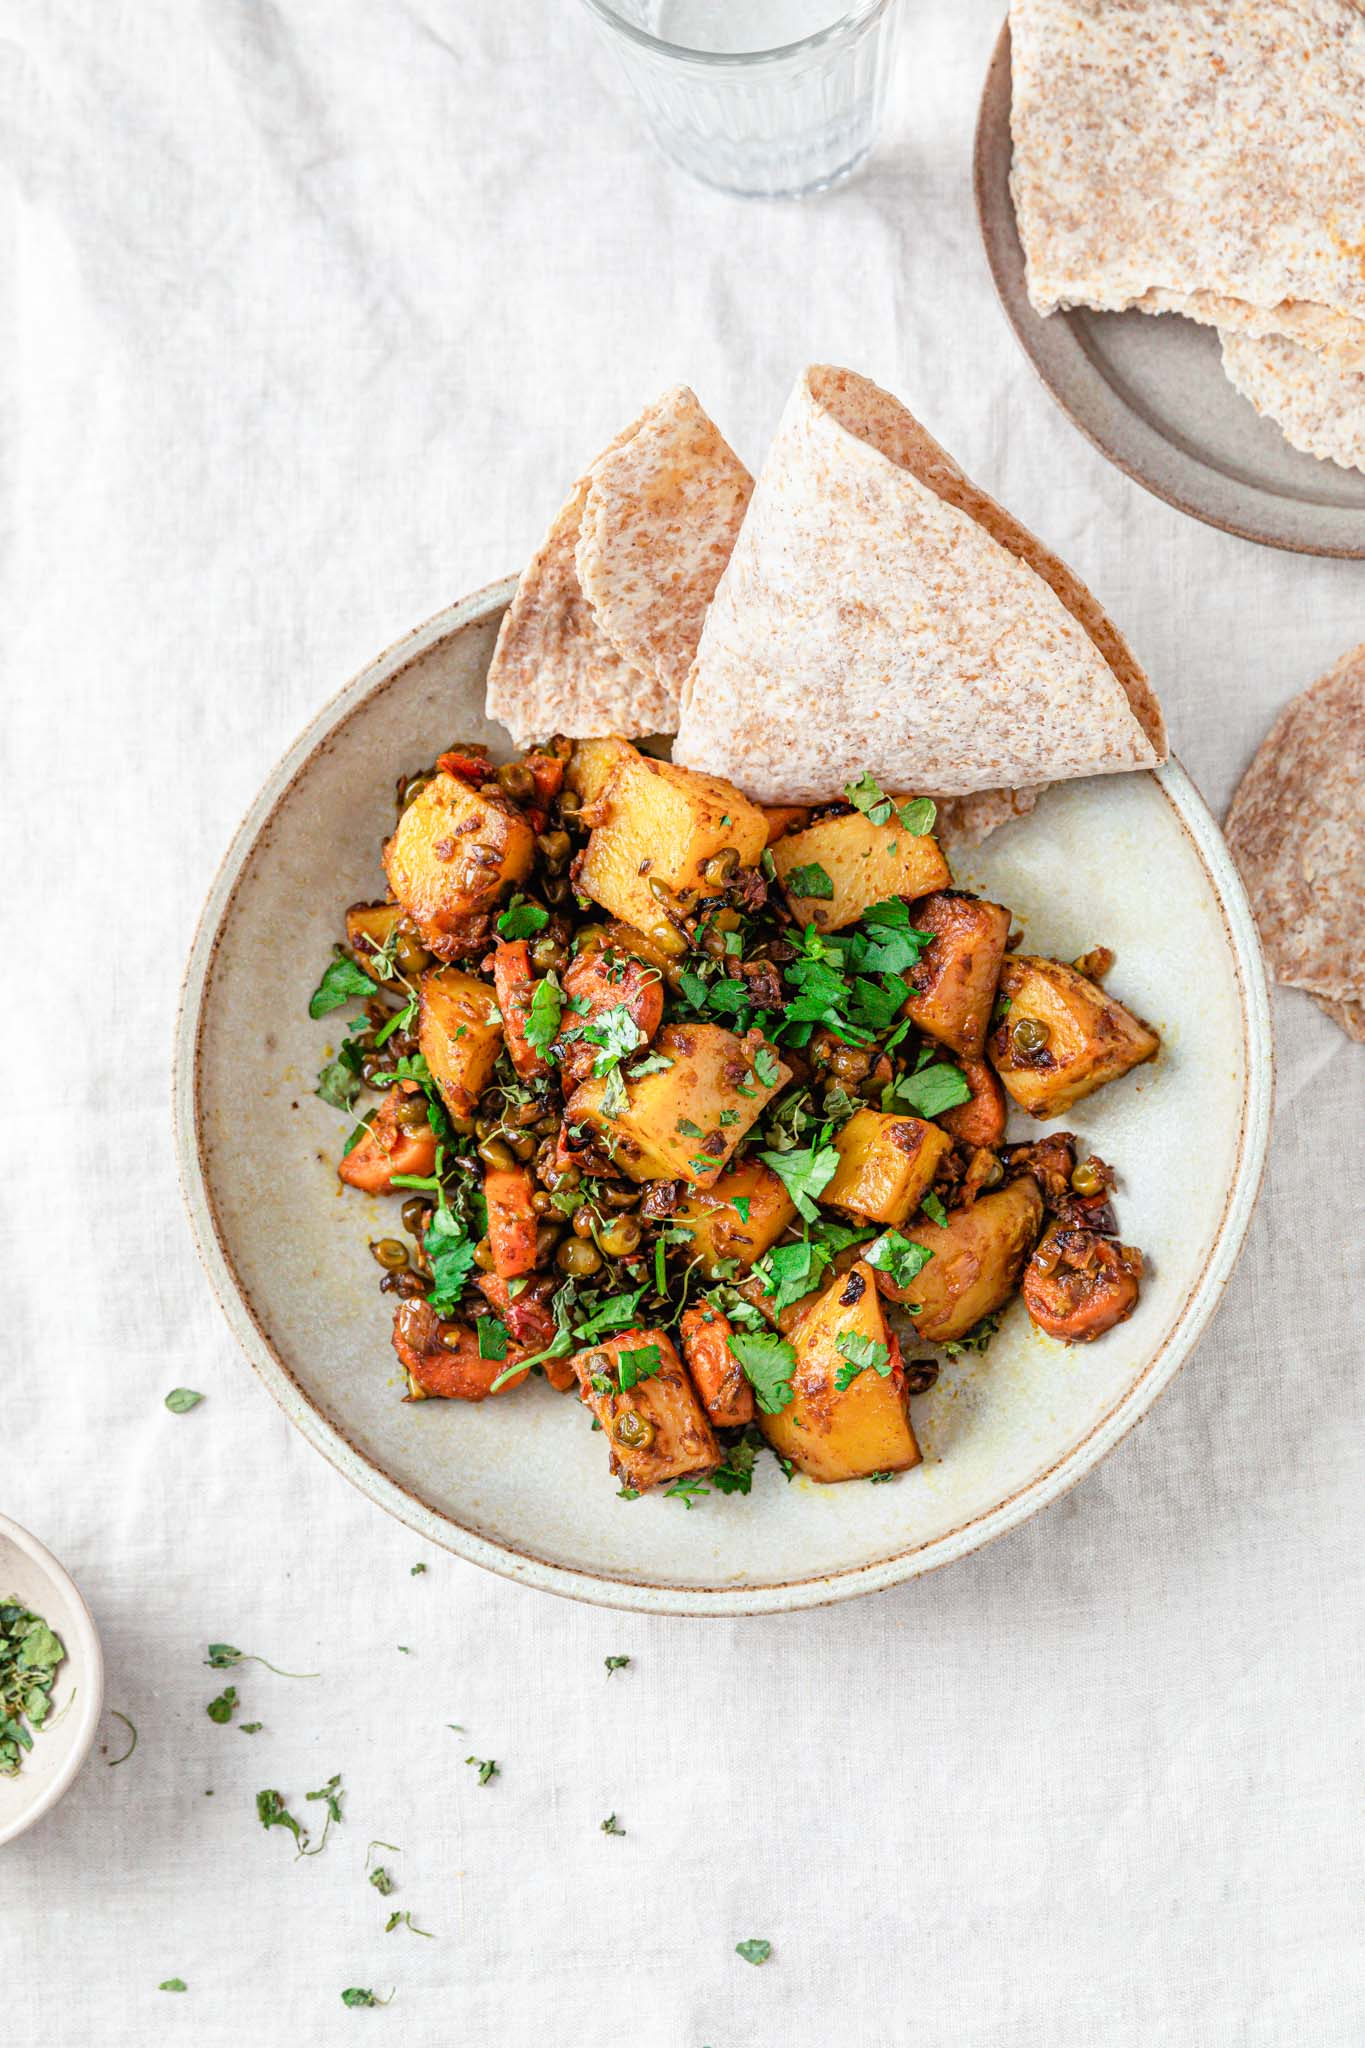 Mixed vegetable curry with potatoes, carrots, and peas topped with cilantro in a beige bowl next a small bowl of methi (dried fenugreek).